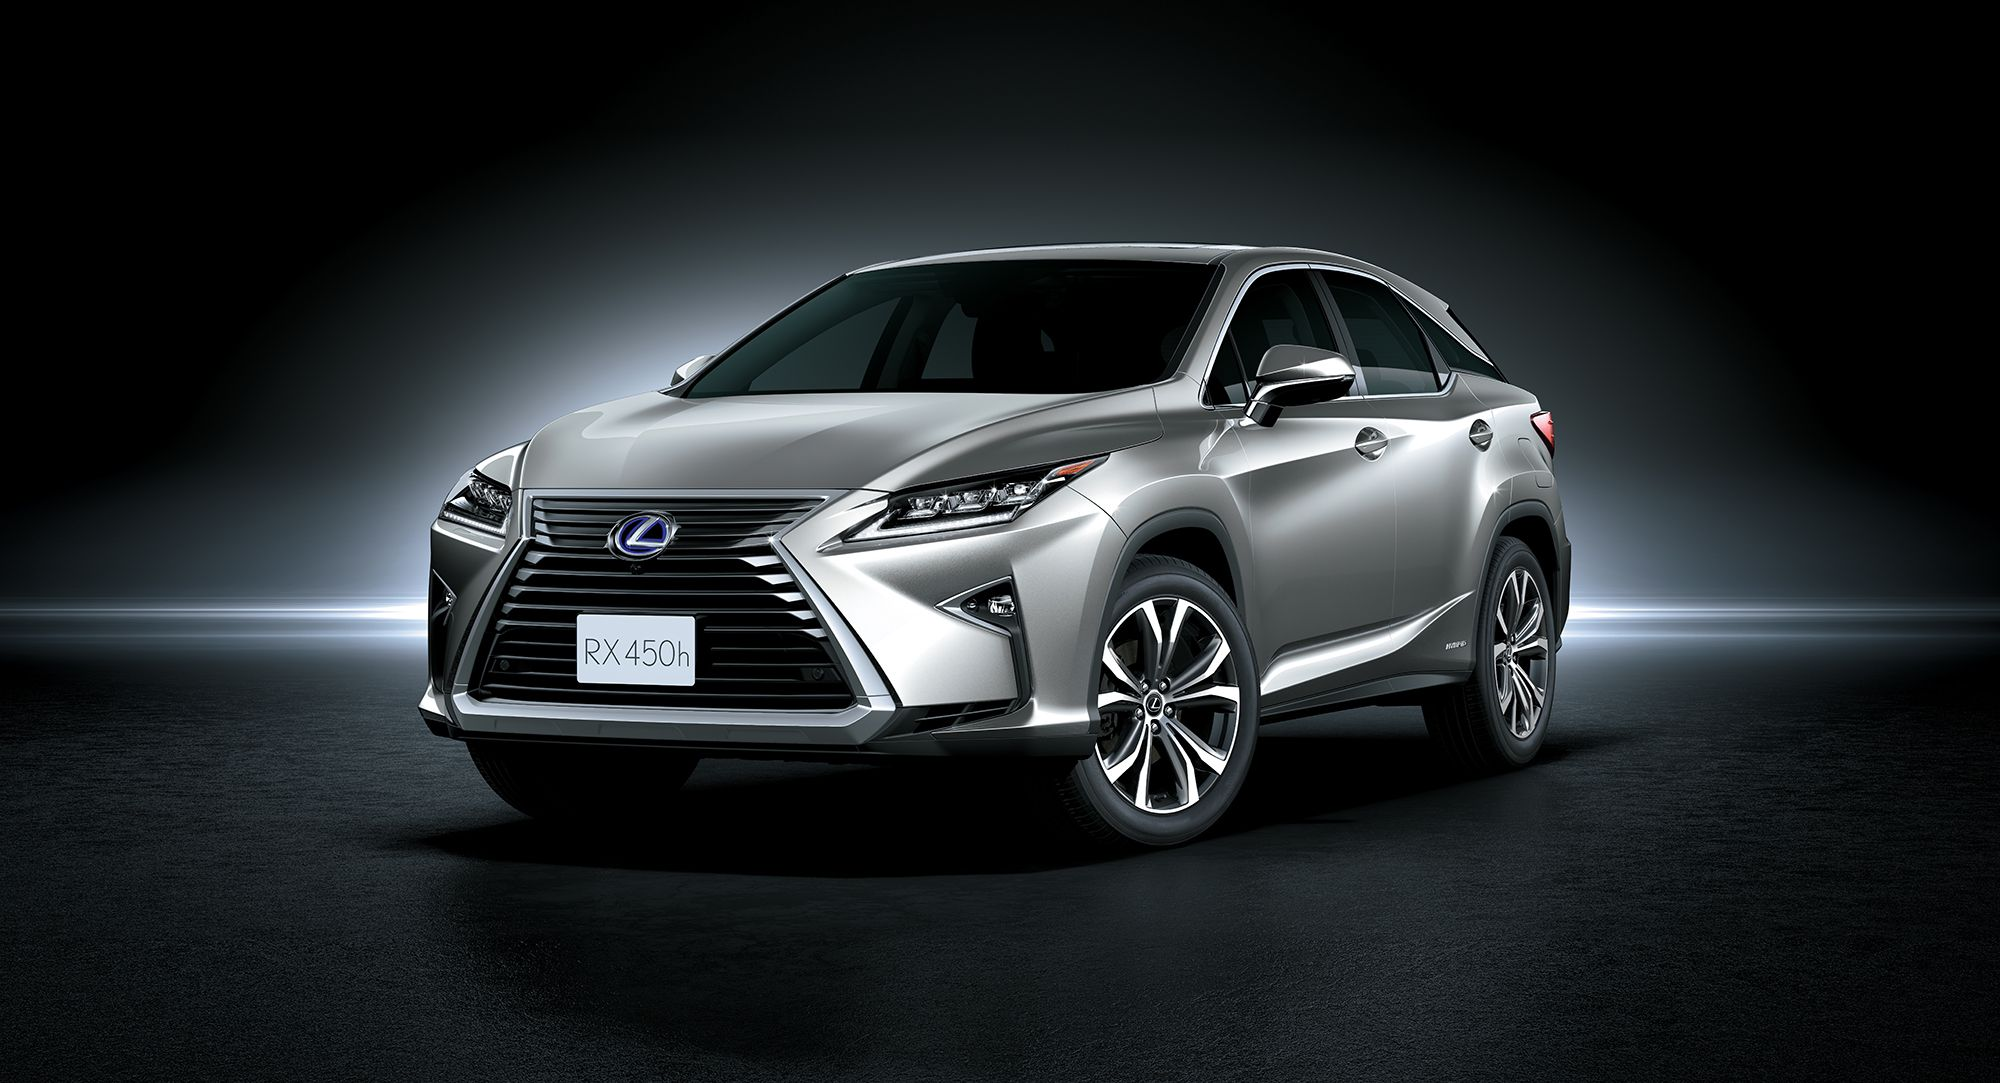 Fifty Shades of Green: The Lexus RX 450h Is For The Opulent And The Eco-Conscious